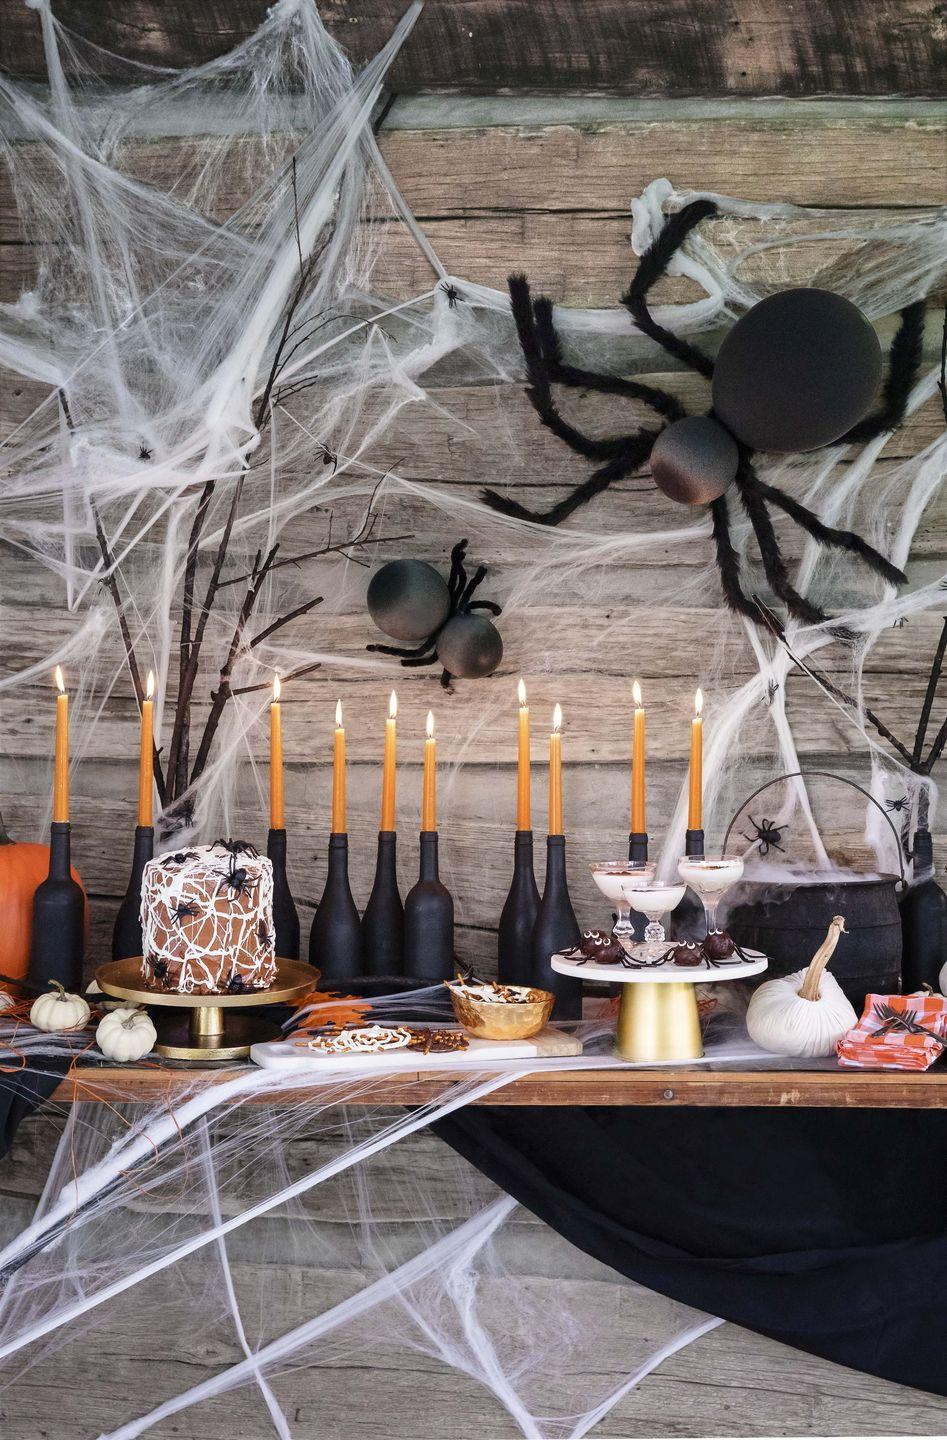 "<p>Add a spooky balloon spider to your door for a not-too-creepy addition to your decor.</p><p><strong>Make the body:</strong> Blow up one large black balloon for the body and one smaller black balloon for the head. Tie the two balloon knots together to form the spider.</p><p><strong>Make the legs: </strong>Wrap eight lengths of unfurled wire hanger or 12-gauge craft wire with black faux fur, holding in place with hot-glue. Twist ends of four lengths together, creating bundles of legs. Repeat with remaining four lengths.</p><p><strong>Assemble the spider: </strong>Wrap a black pipe cleaner around twisted ends of leg bundles. Wrap pipe cleaner around ""neck"" of spider where balloons are tied together. Wrap fishing wire around leg to hang.</p><p><a class=""link rapid-noclick-resp"" href=""https://www.amazon.com/Shannon-Luxury-Faux-Grizzly-Black/dp/B07FFTH79R/ref=sr_1_36?tag=syn-yahoo-20&ascsubtag=%5Bartid%7C10050.g.22350299%5Bsrc%7Cyahoo-us"" rel=""nofollow noopener"" target=""_blank"" data-ylk=""slk:Shop Faux Fur"">Shop Faux Fur</a></p>"